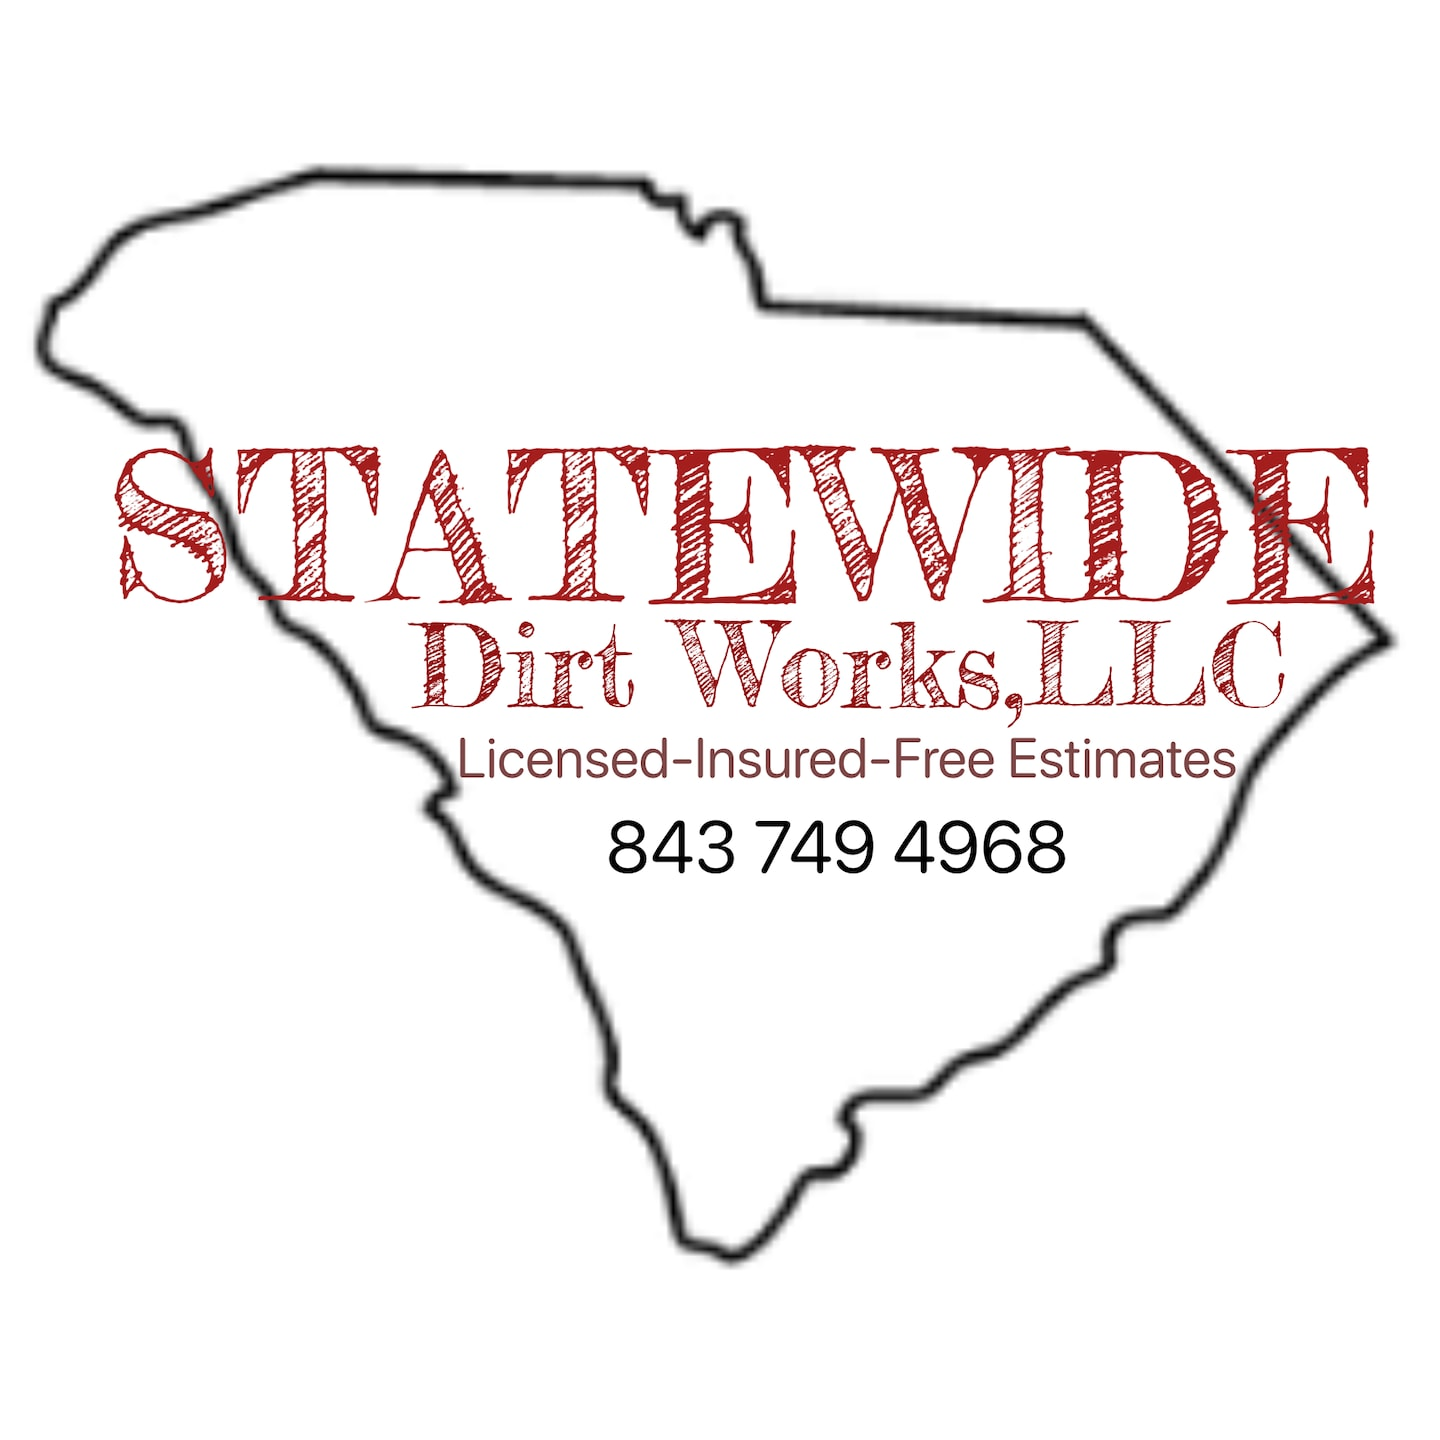 Statewide Dirt Works LLC